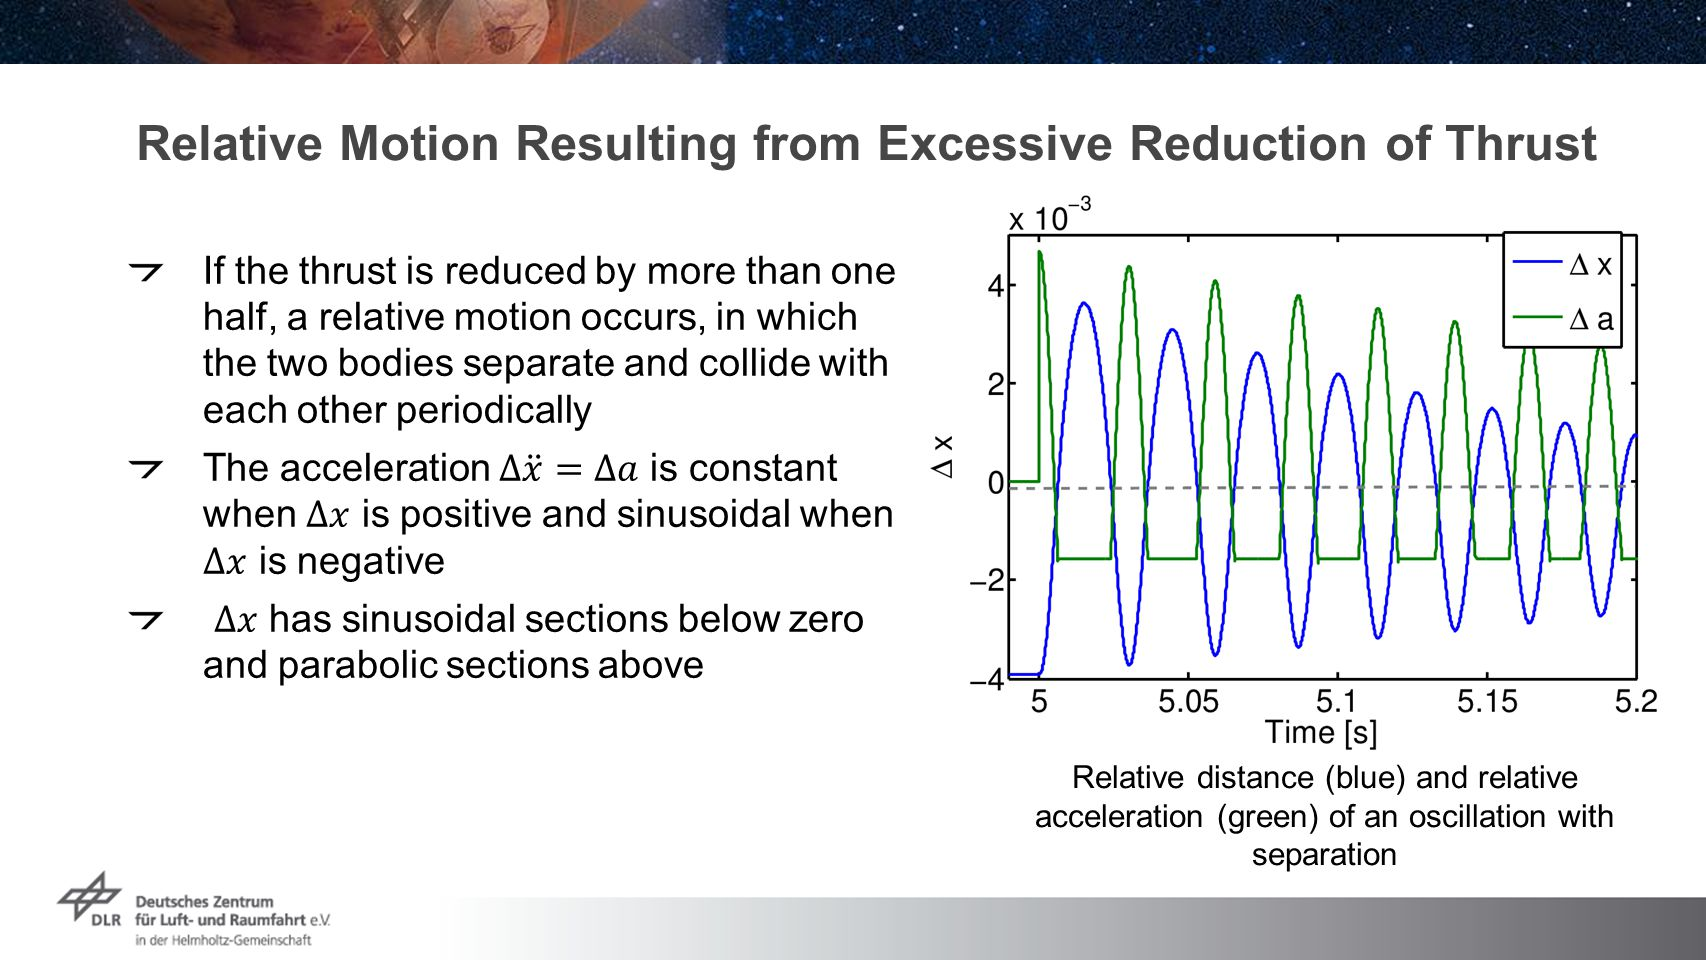 Relative Motion Resulting from Excessive Reduction of Thrust Relative distance (blue) and relative acceleration (green) of an oscillation with separation